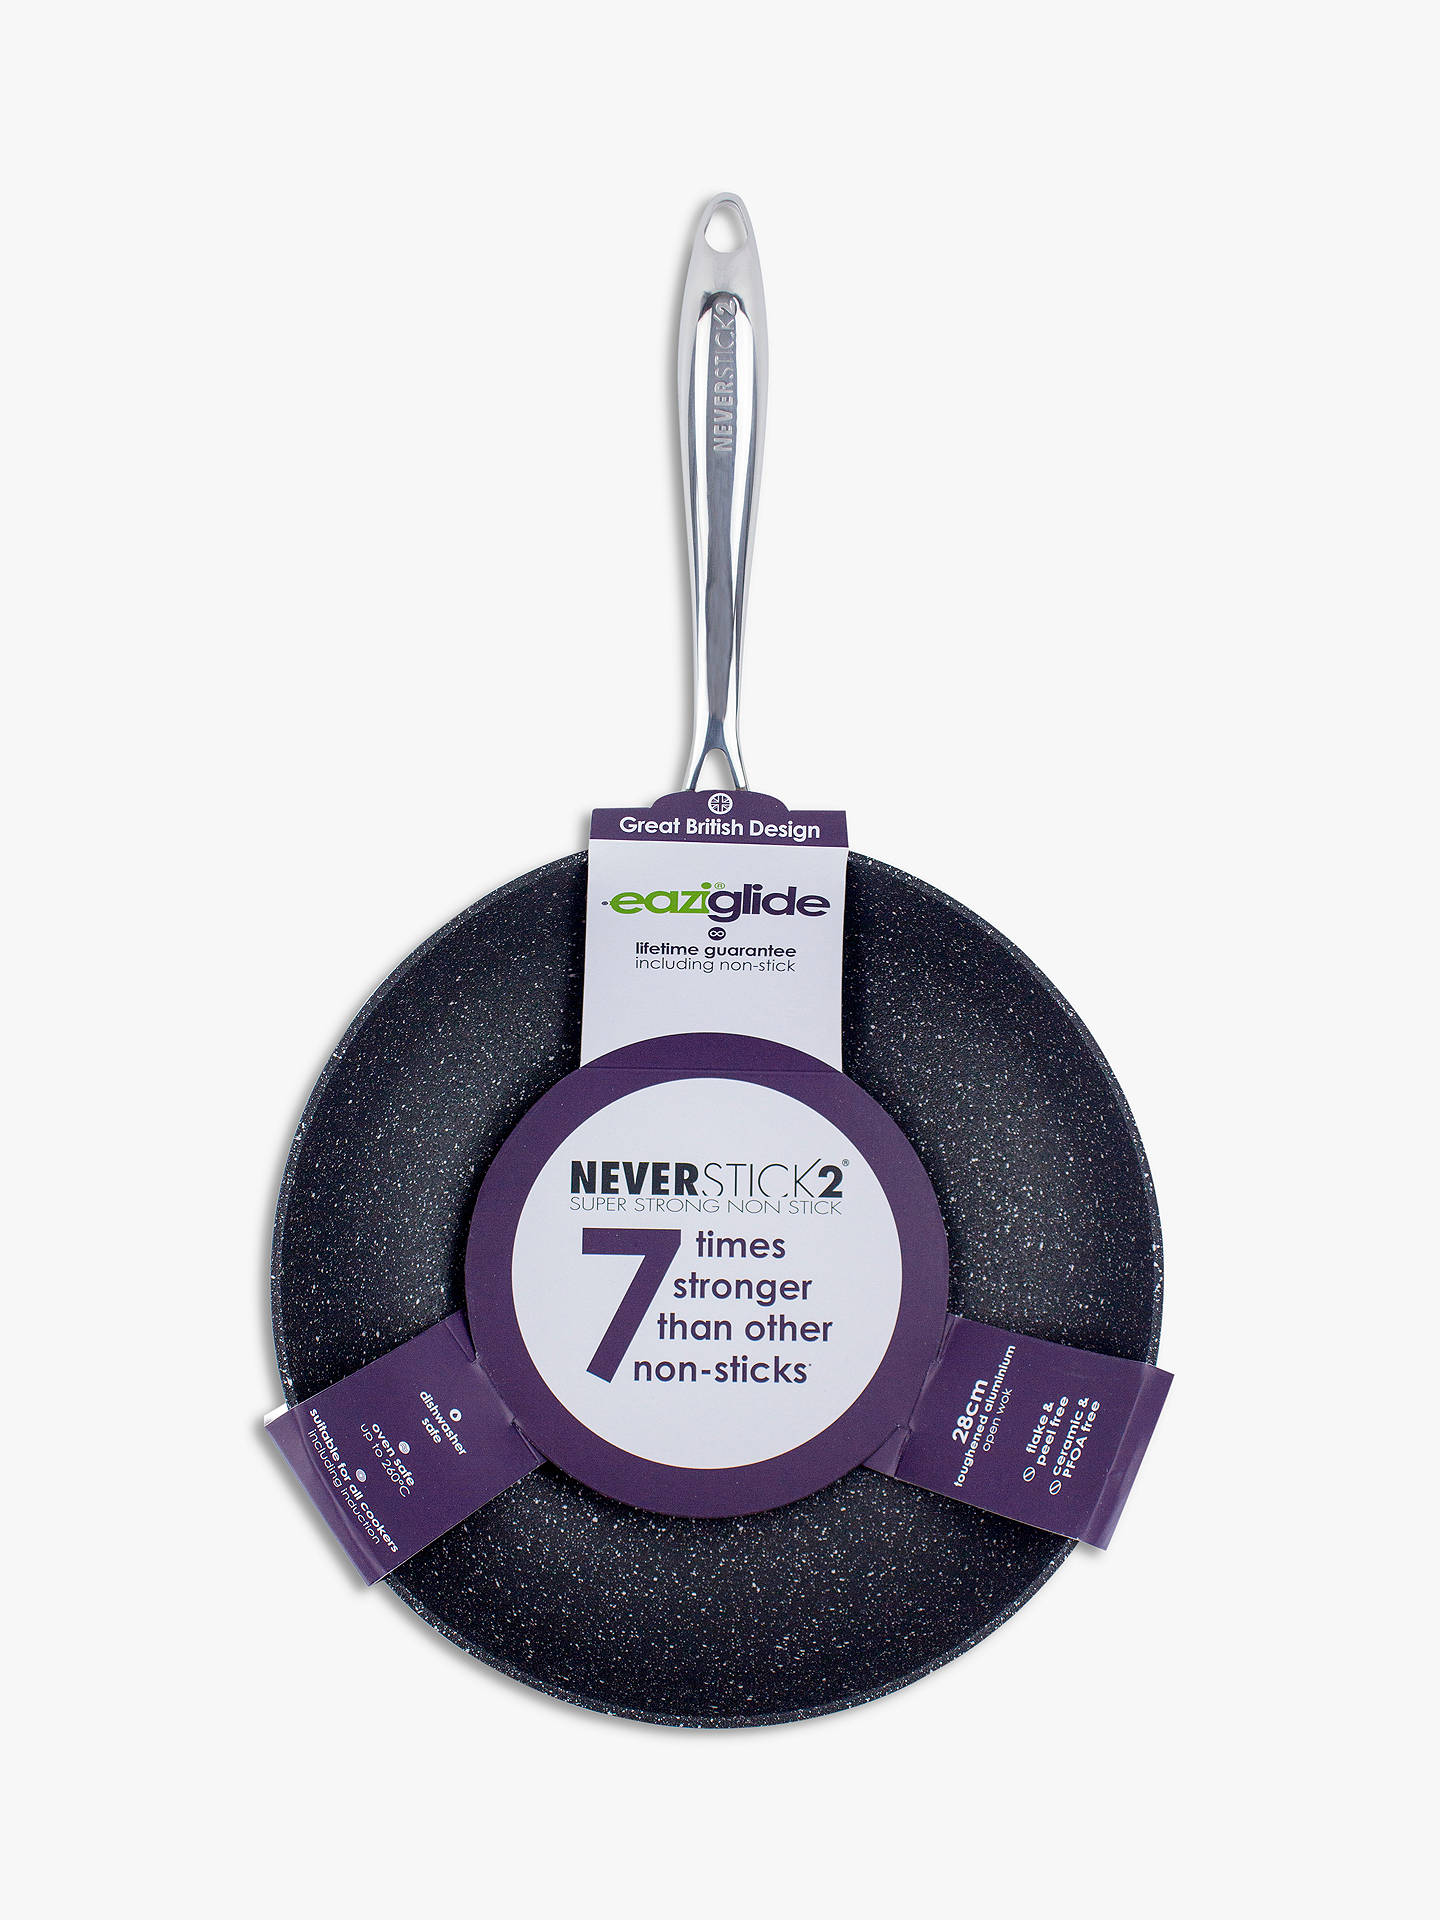 Buy Eaziglide Neverstick2 Non-Stick Open Wok, 28cm Online at johnlewis.com